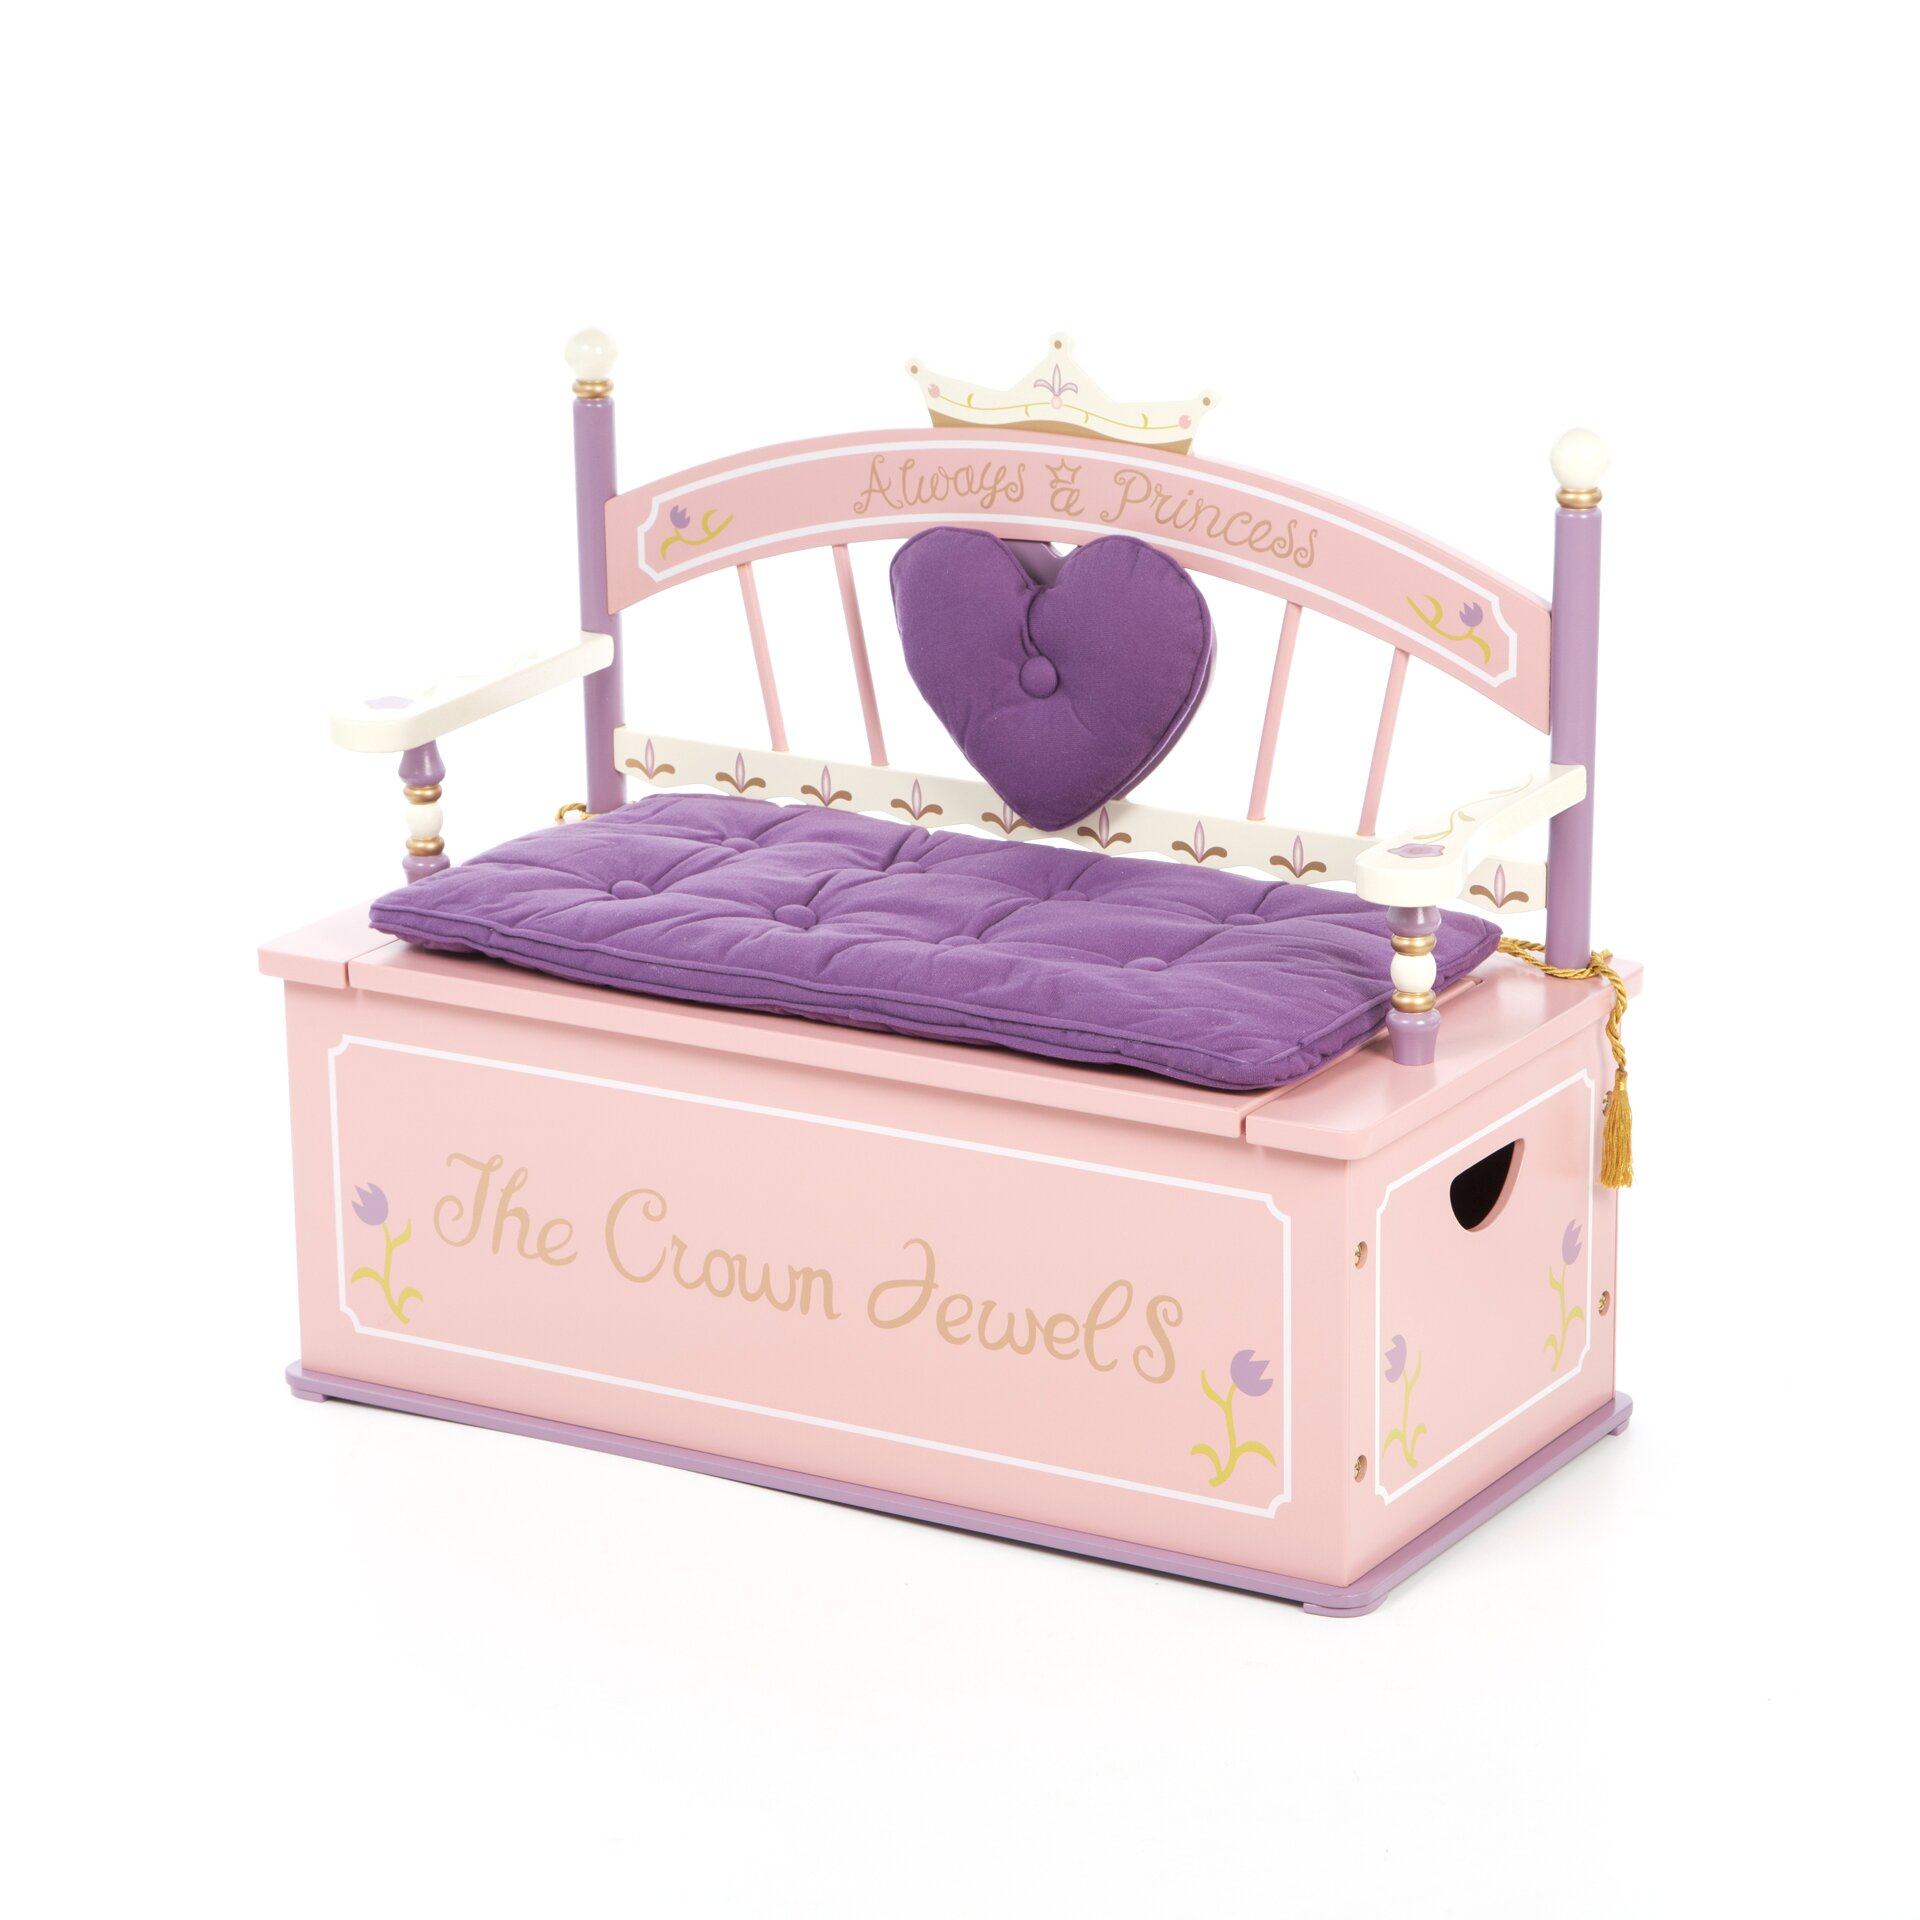 Levels Of Discovery Princess Kids Bench With Storage Compartment Reviews Wayfair